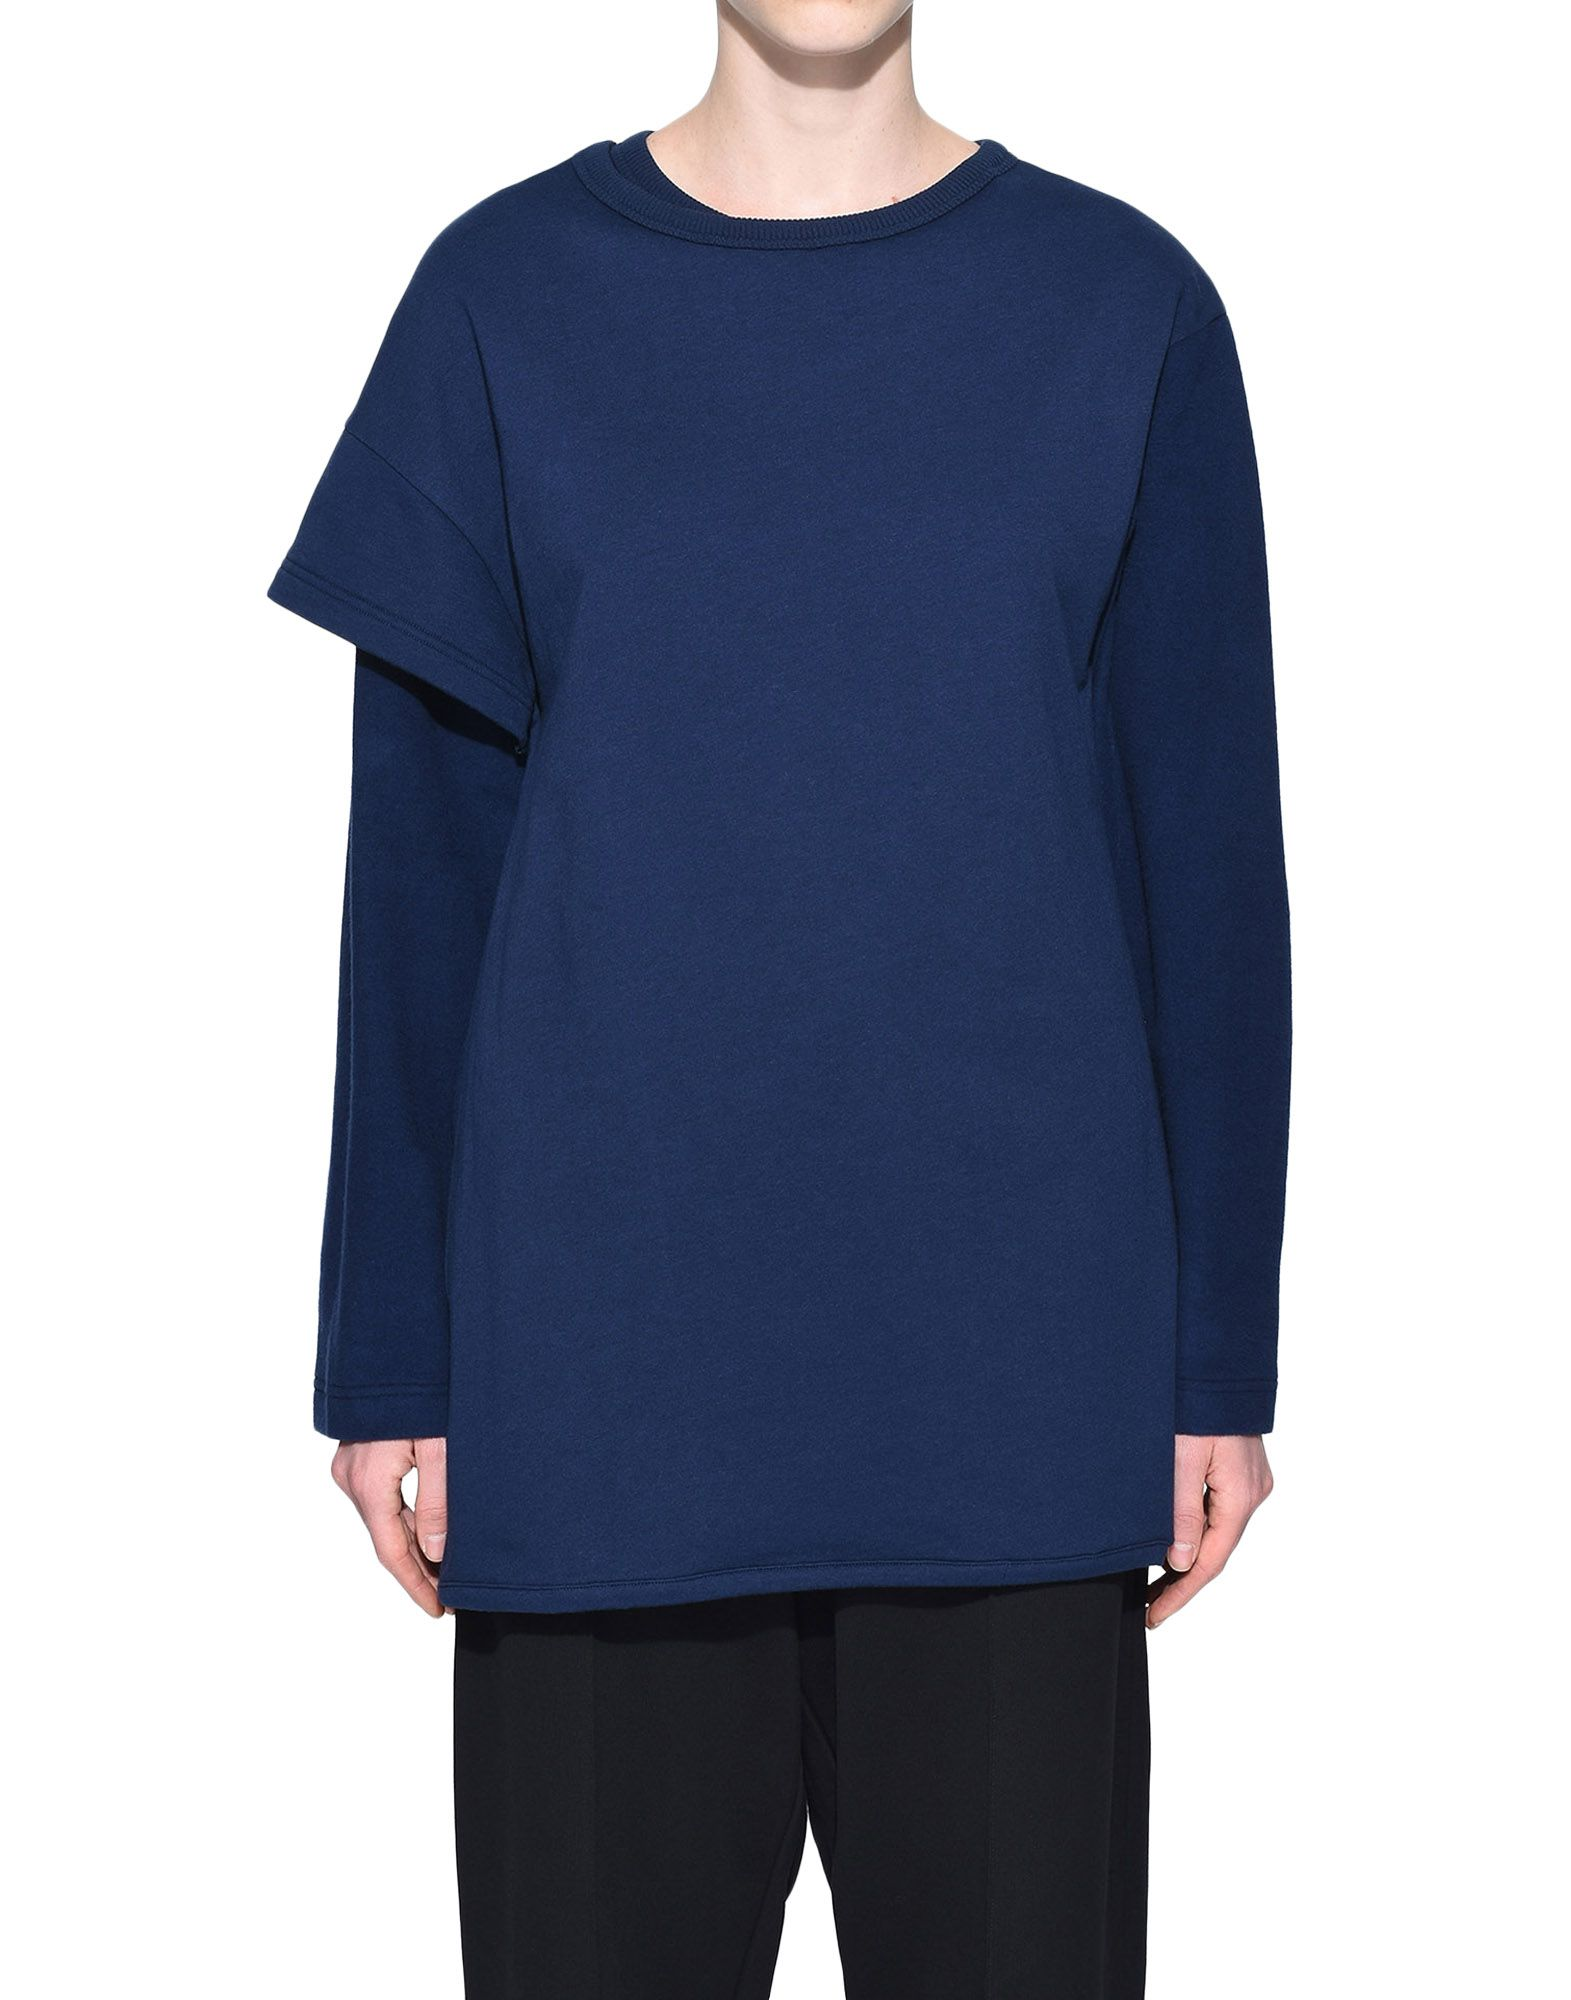 Y-3 Y-3 Two-Layer Fleece Sweater Sweatshirt Woman r